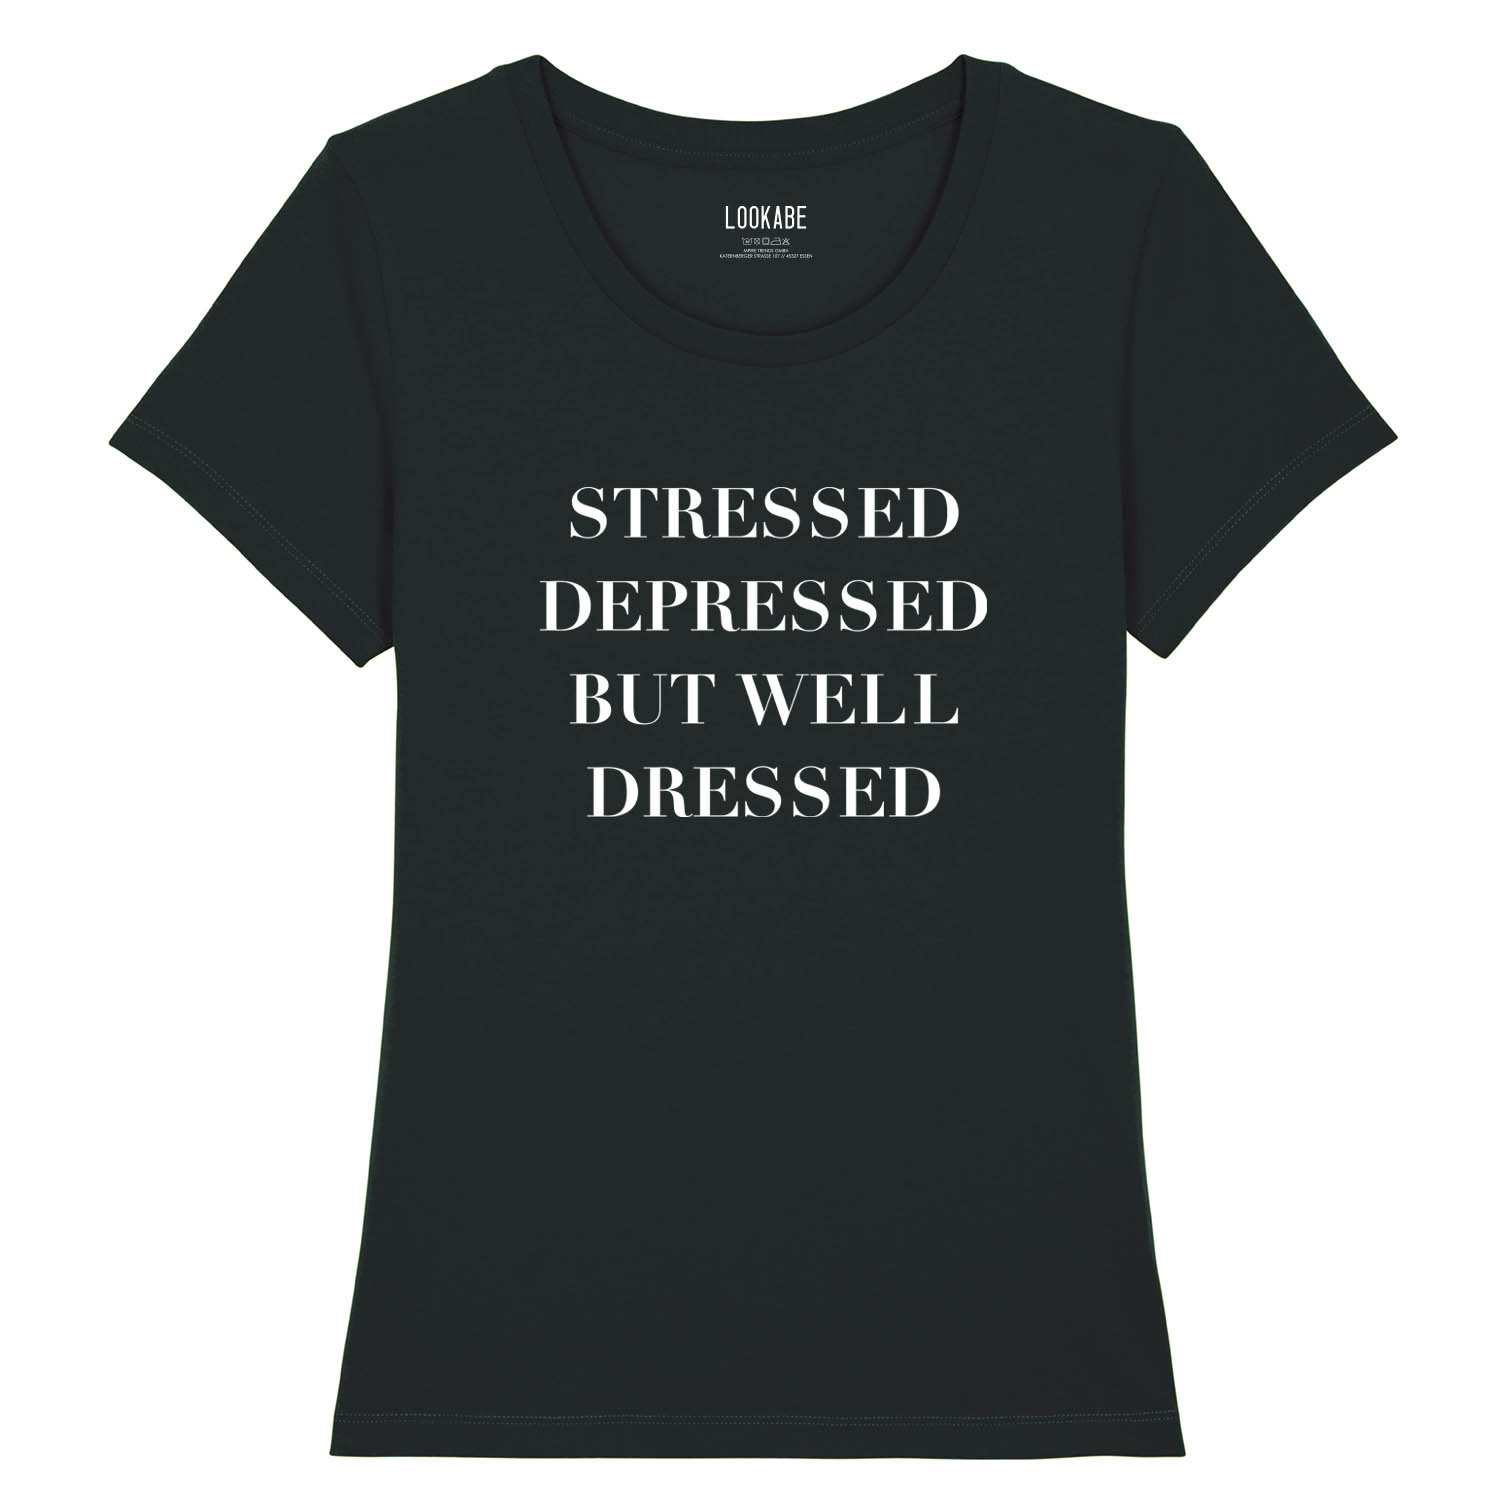 T-Shirt - Stressed depressed but well dressed